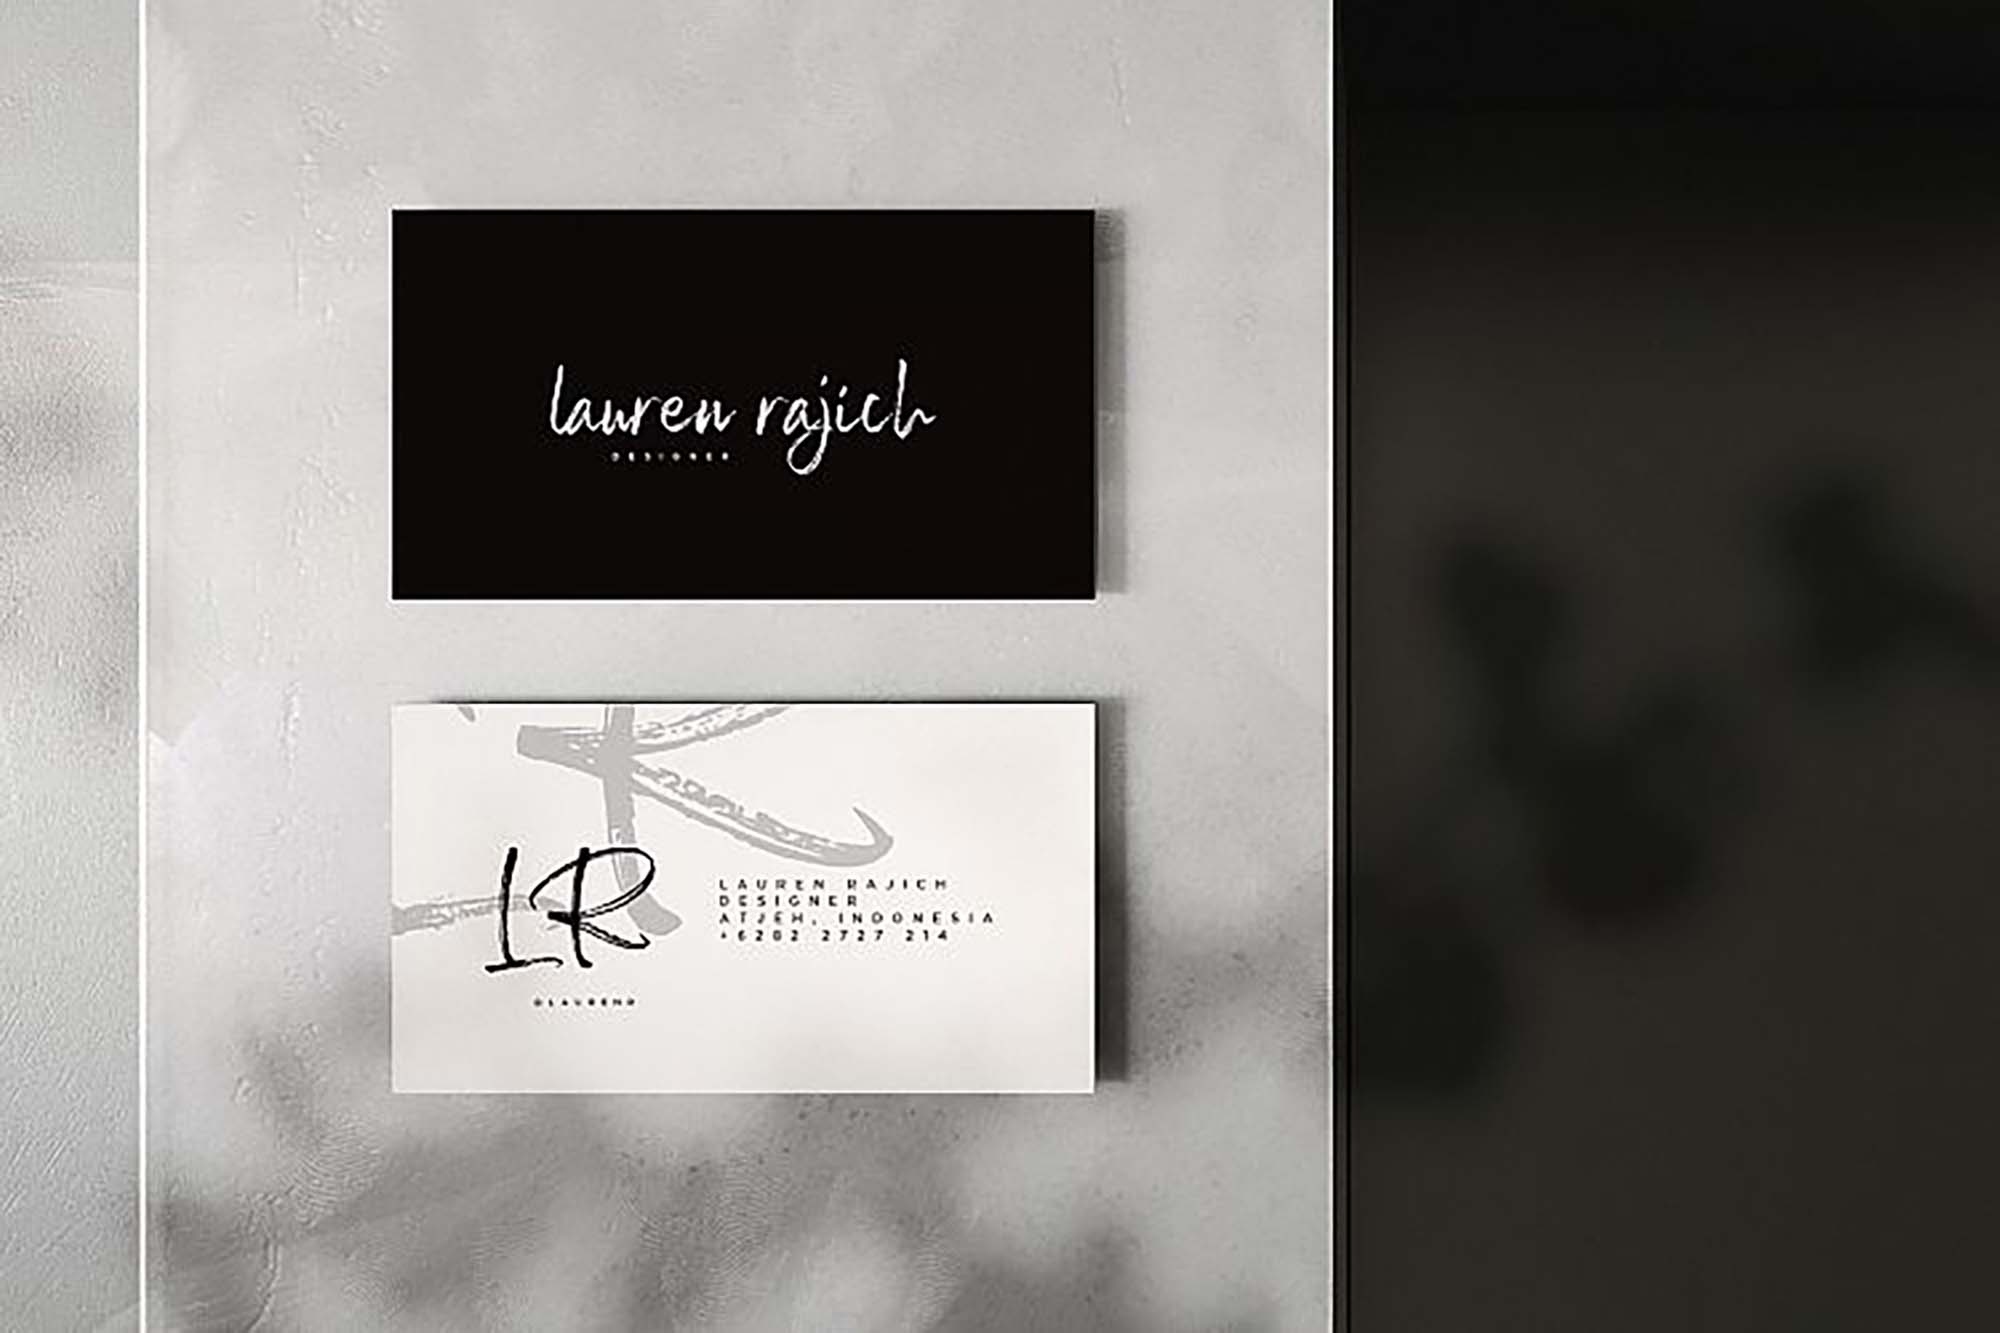 Sail Royals Font on Business Card